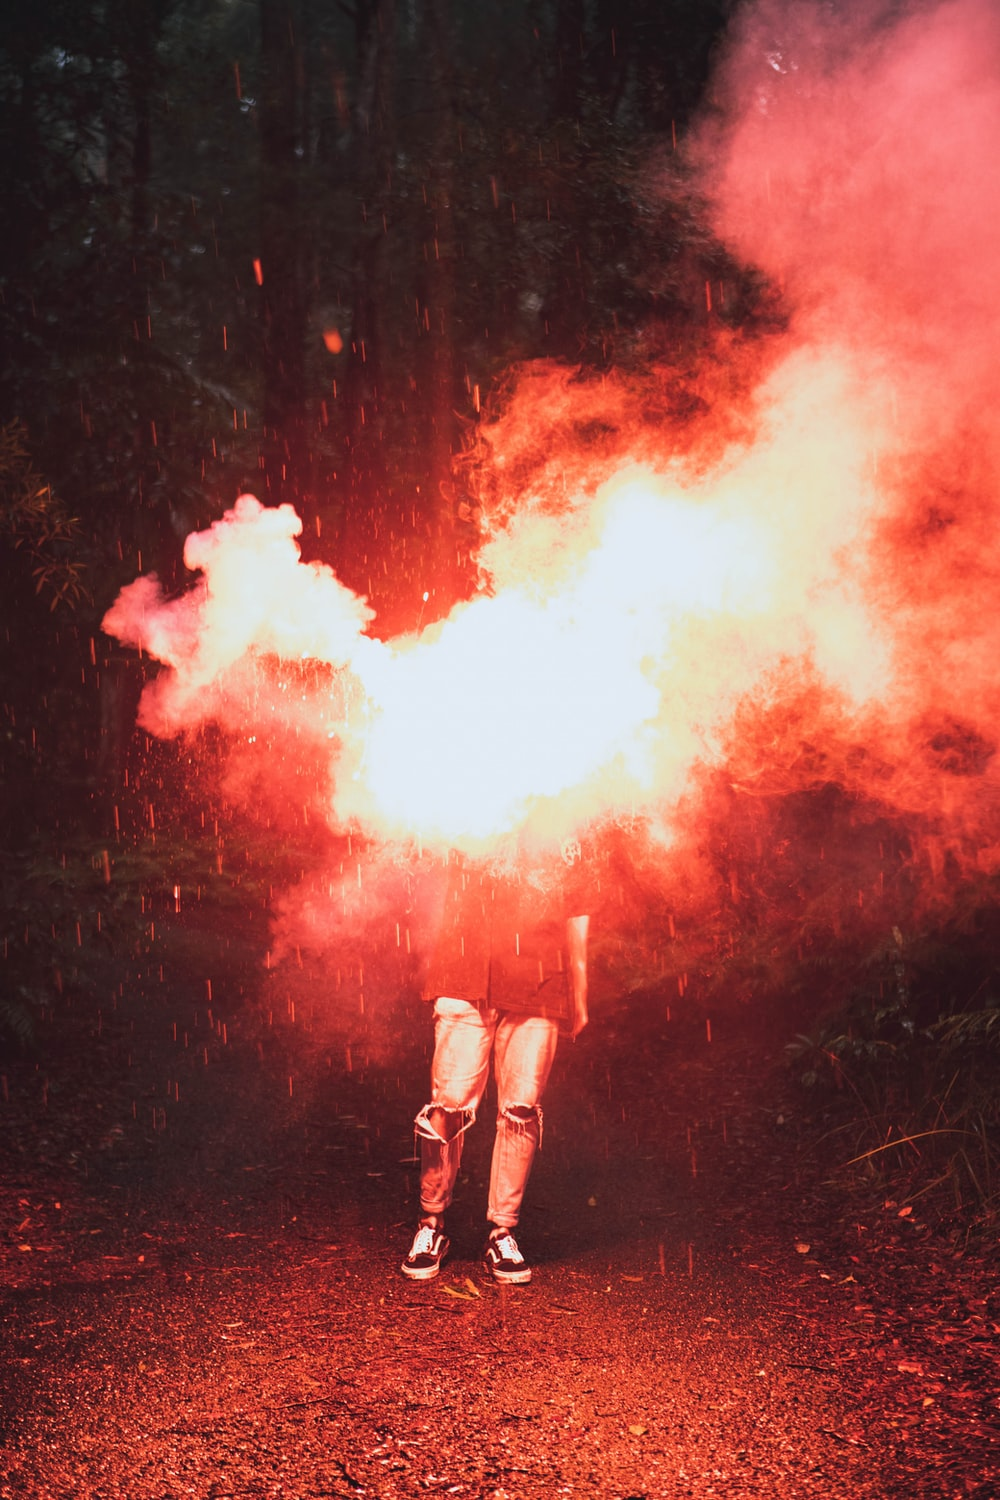 person in white shorts standing on red and white smoke